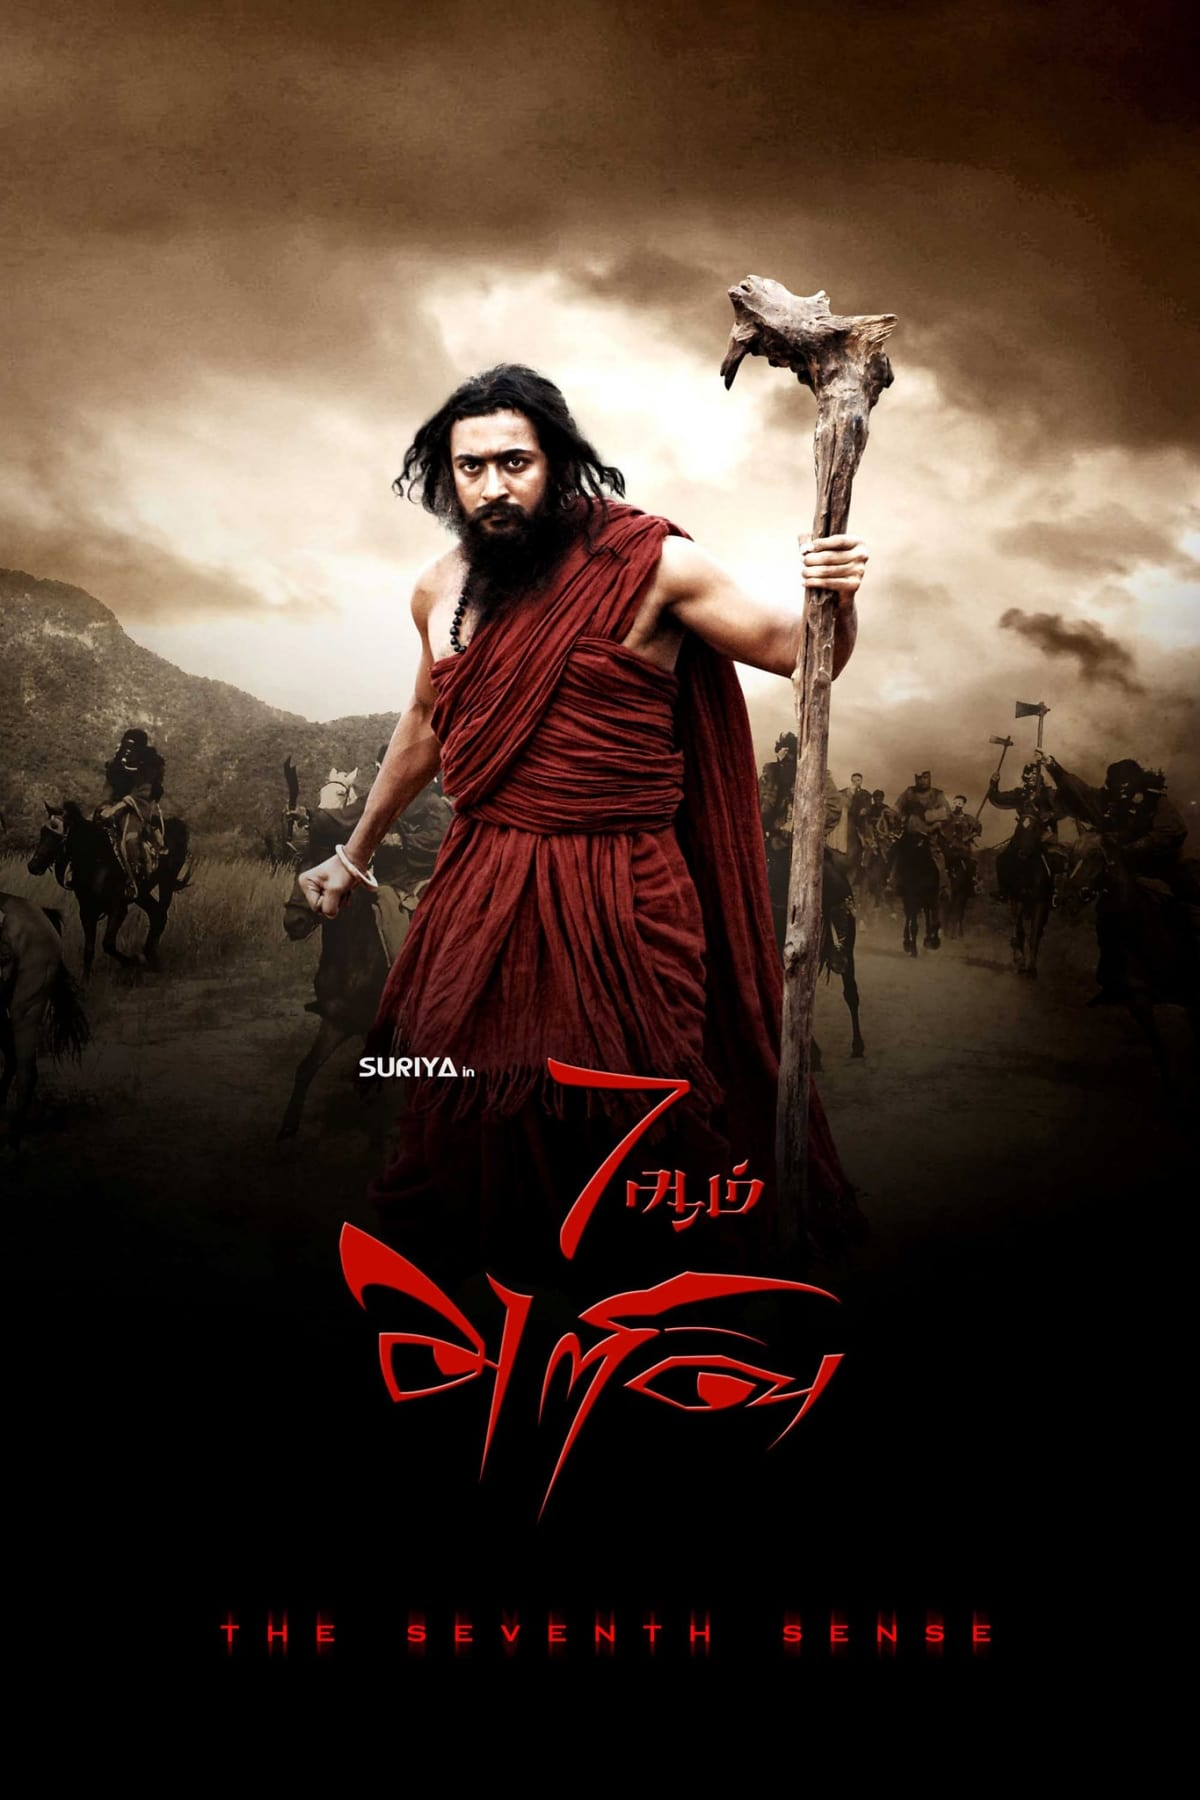 7aum Arivu (aka Chennai vs China) Tamil & Hindi 1080p WEB-DL [6 GB, 3.3 GB] 720p WEB-Rip [2.3 GB, 1.2 GB] | G-Drive